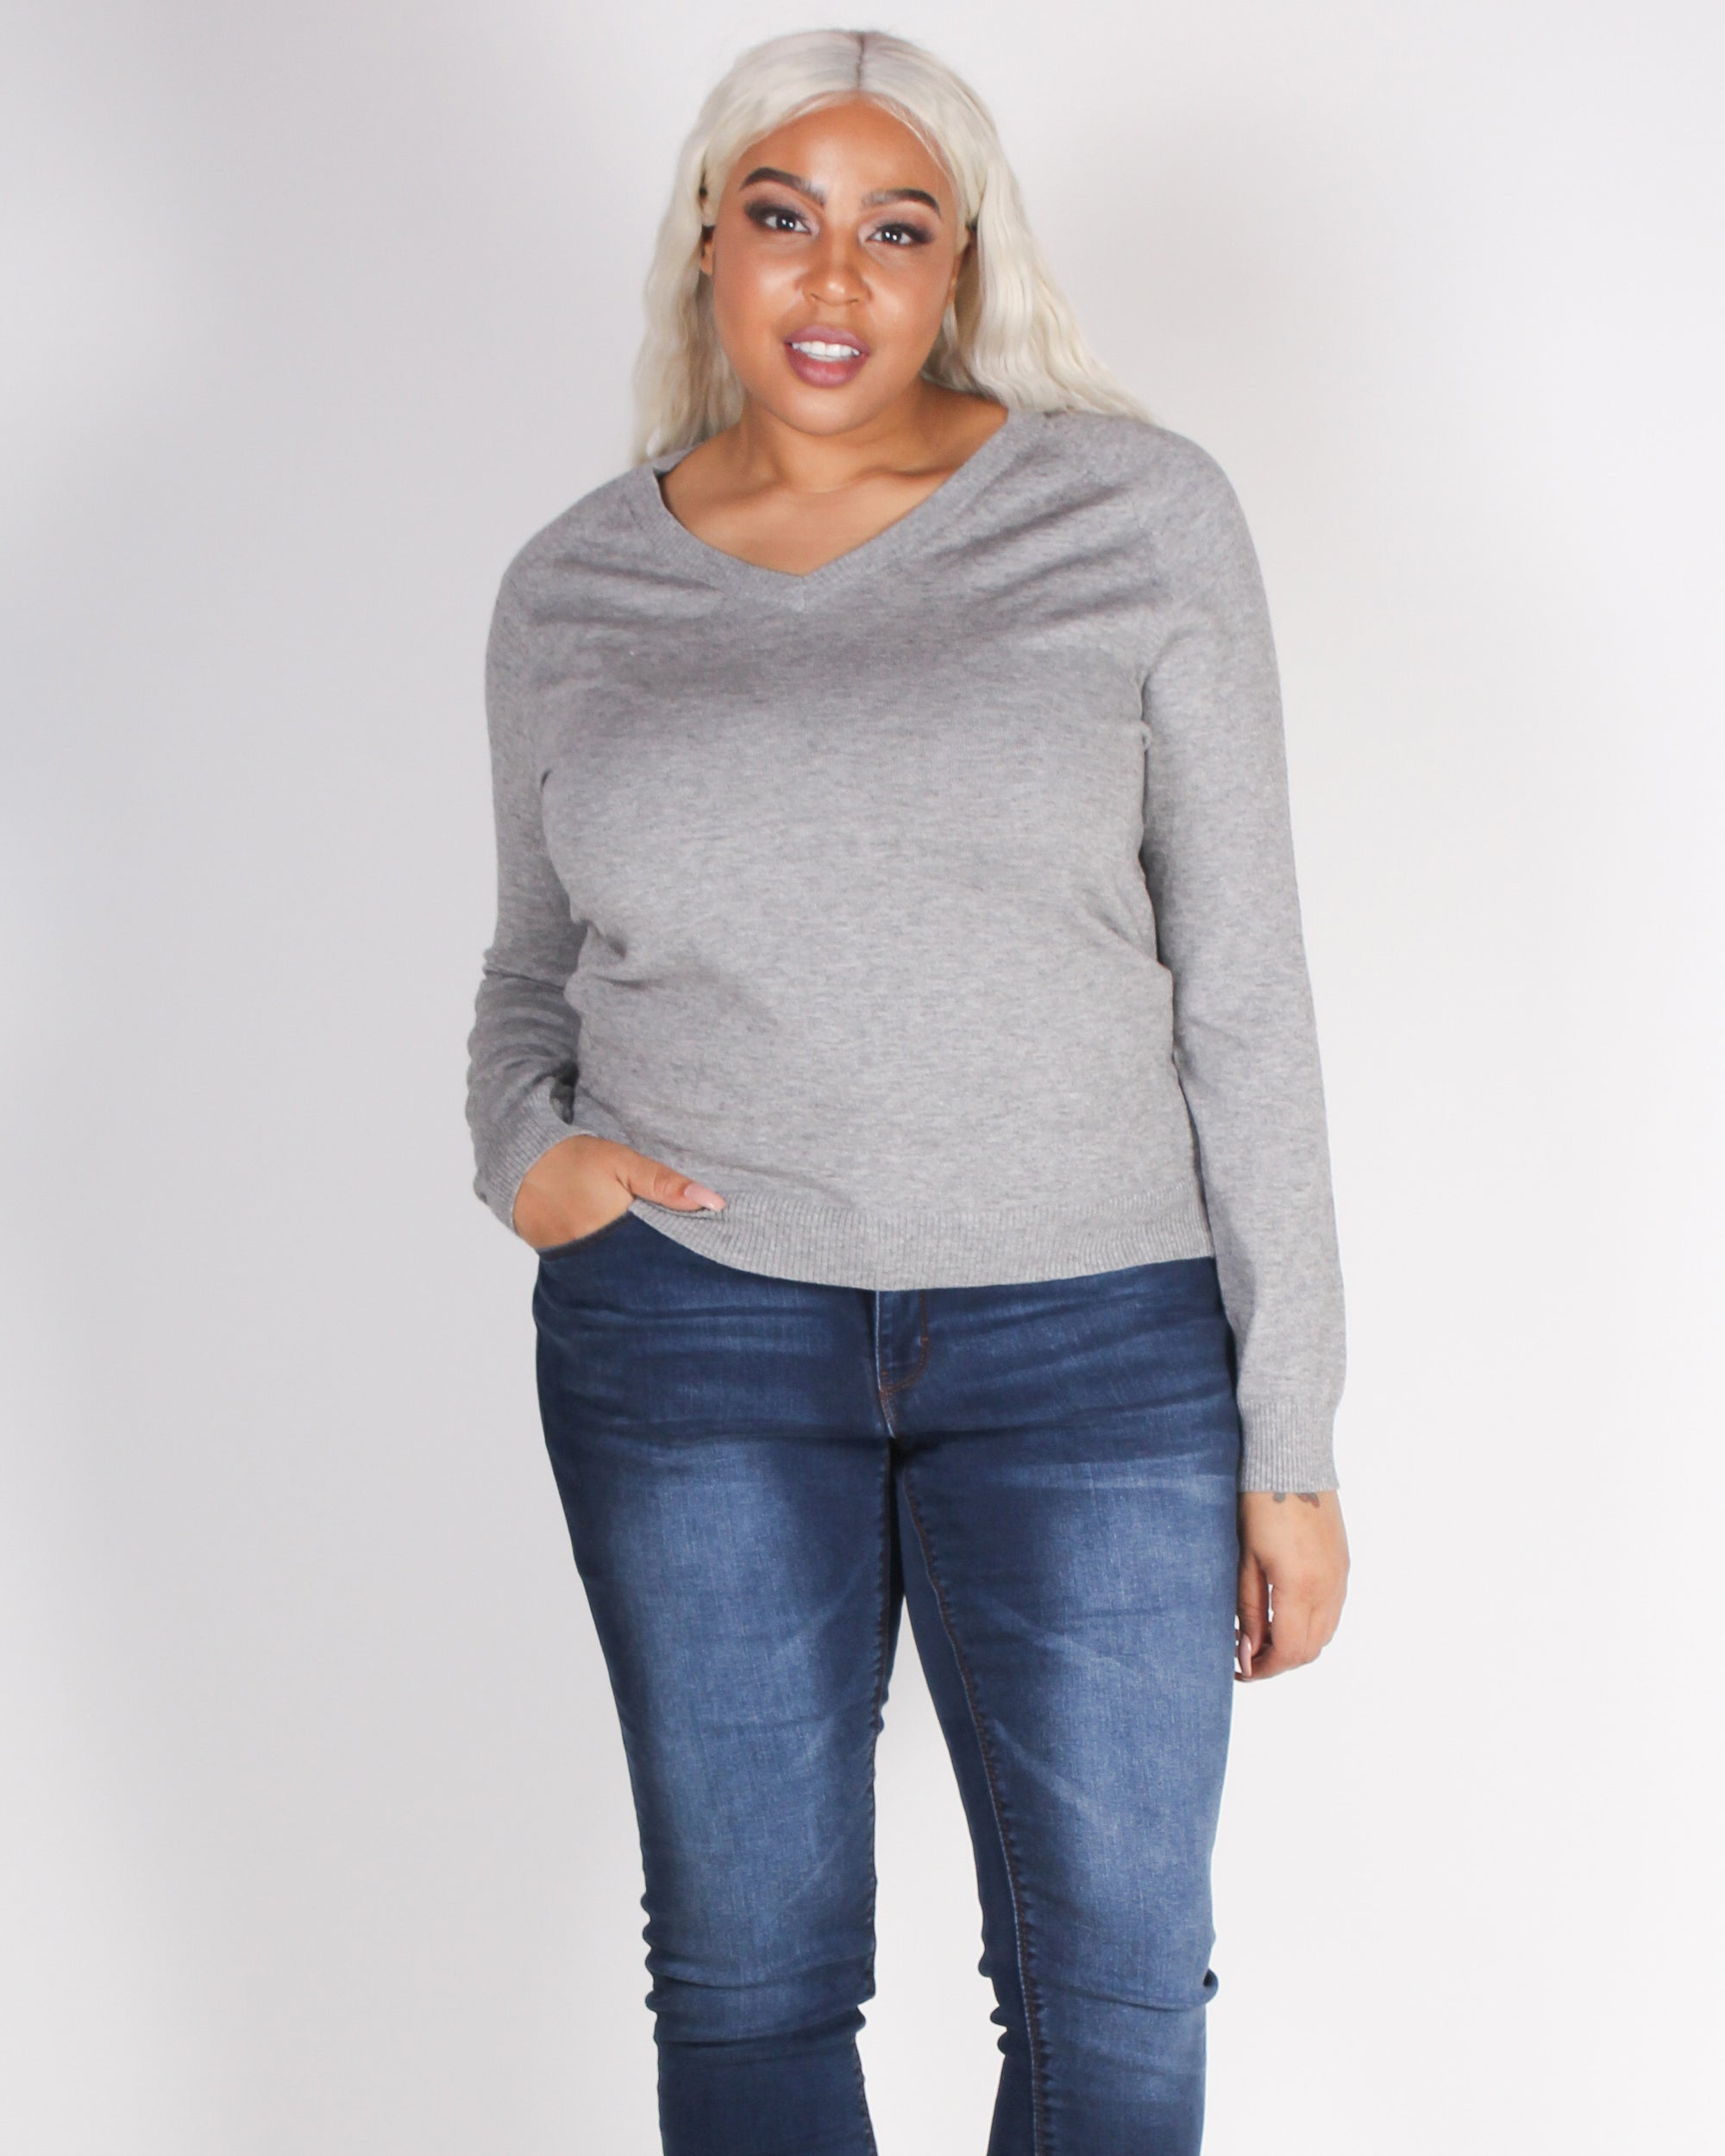 Fashion Q Shop Q Do it Right Sweater (Grey) 9355WYX